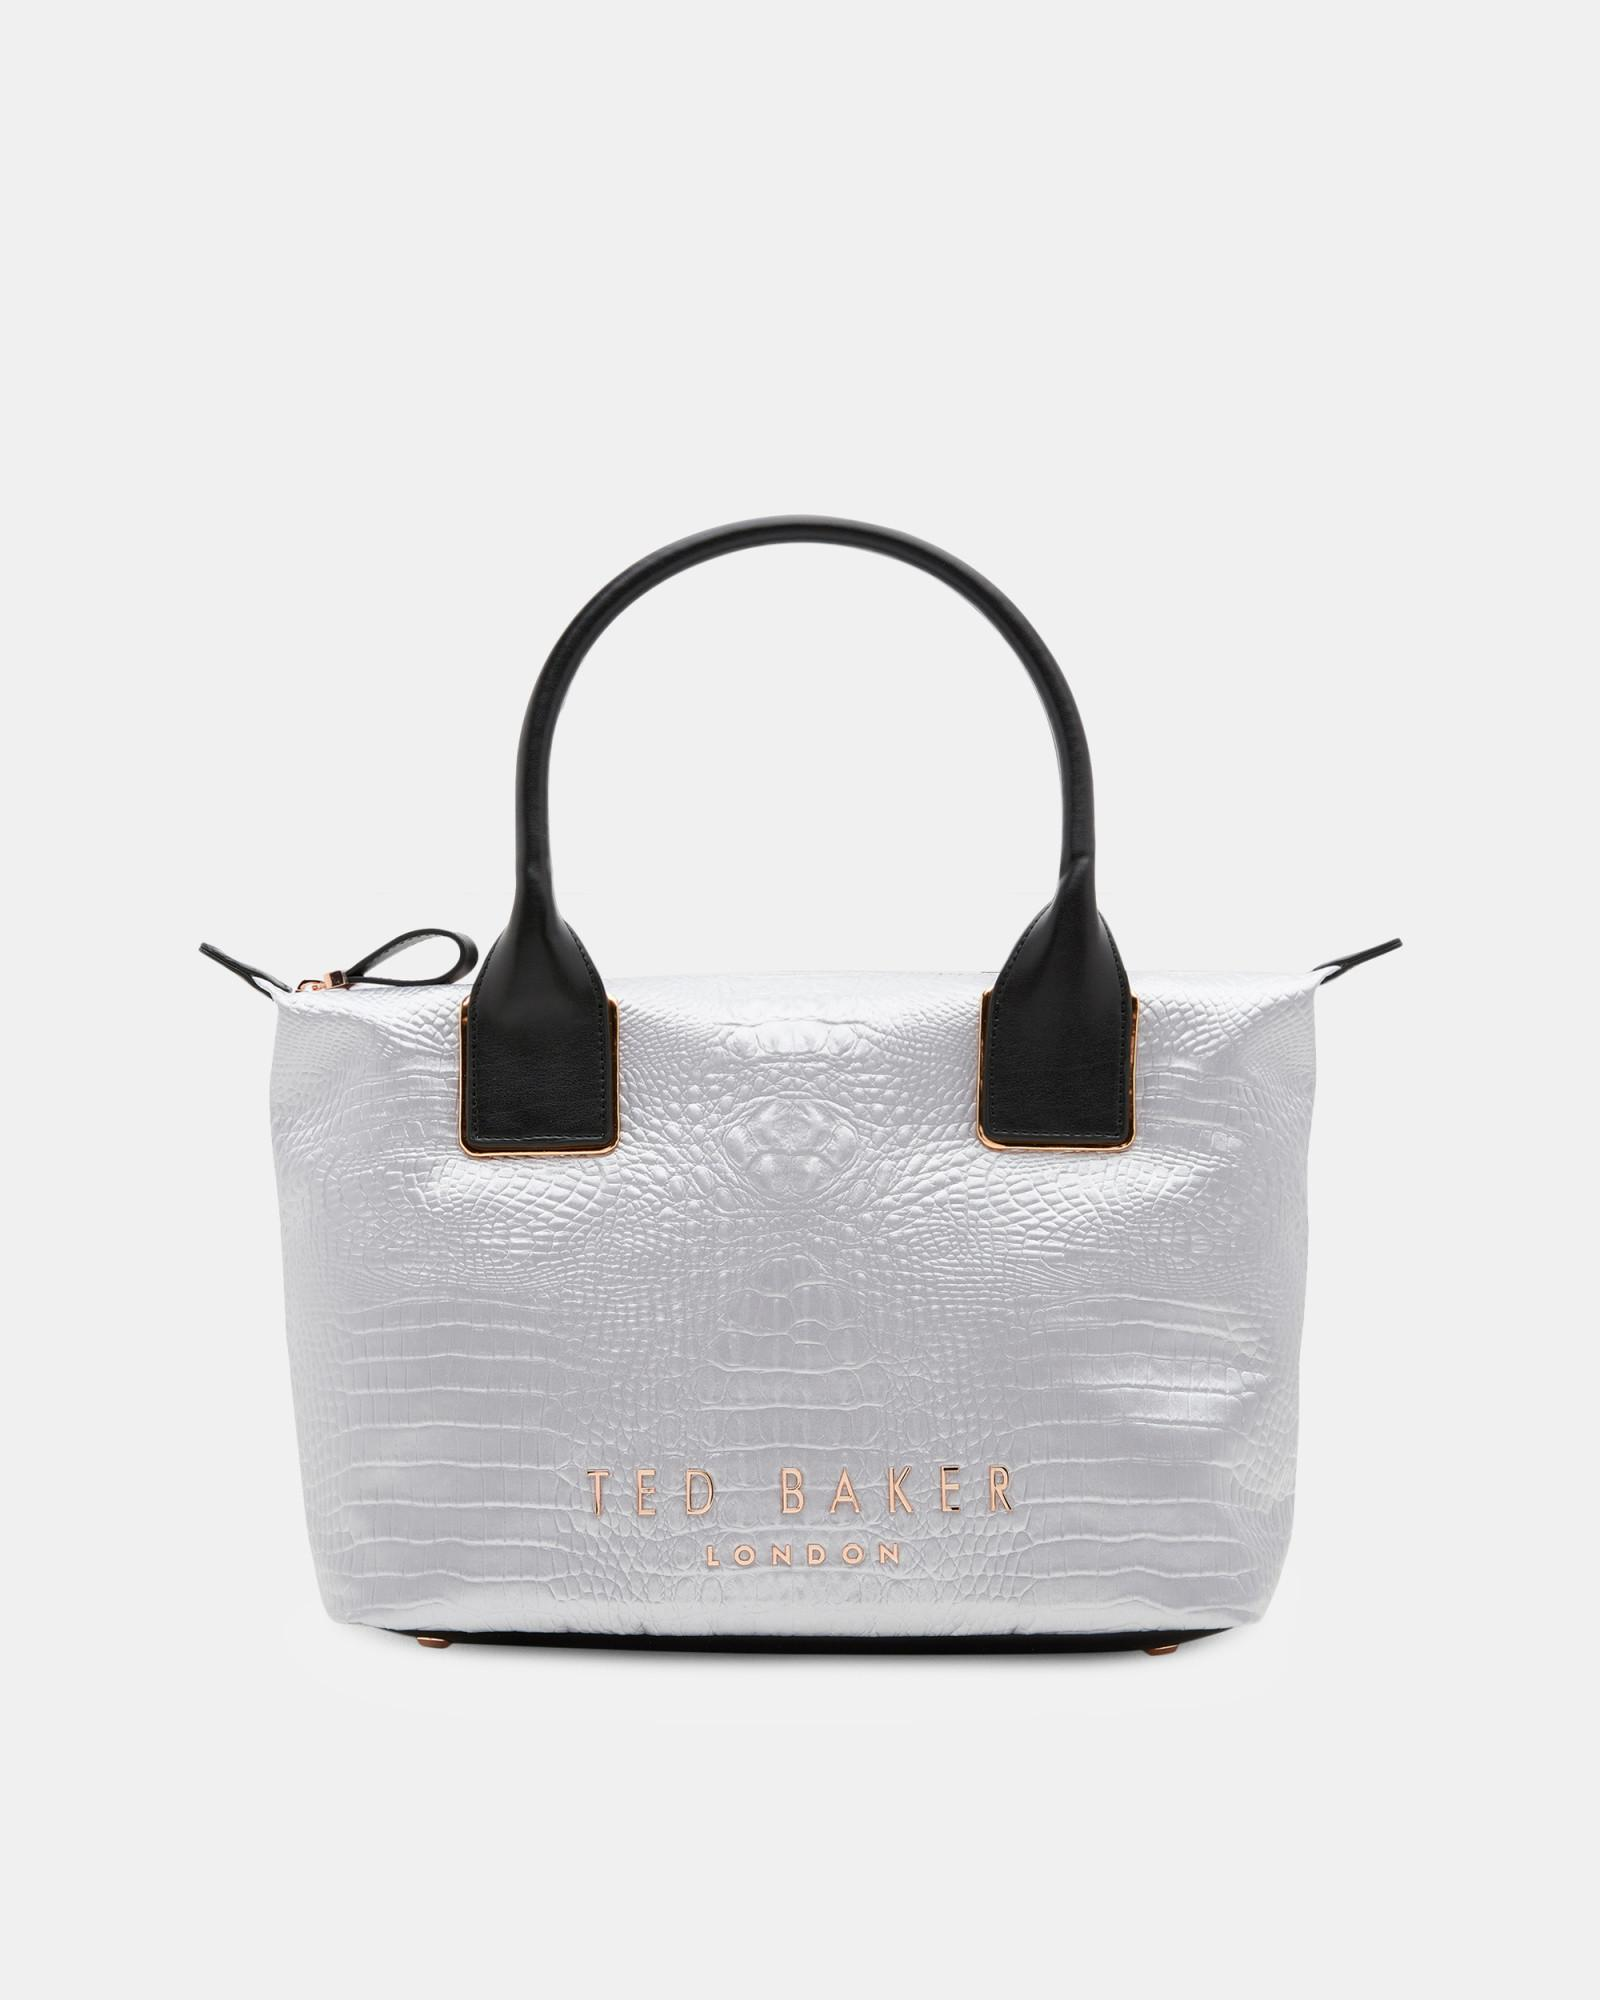 0ddd3023fca Ted Baker Exotic Small Tote Bag in Gray - Lyst